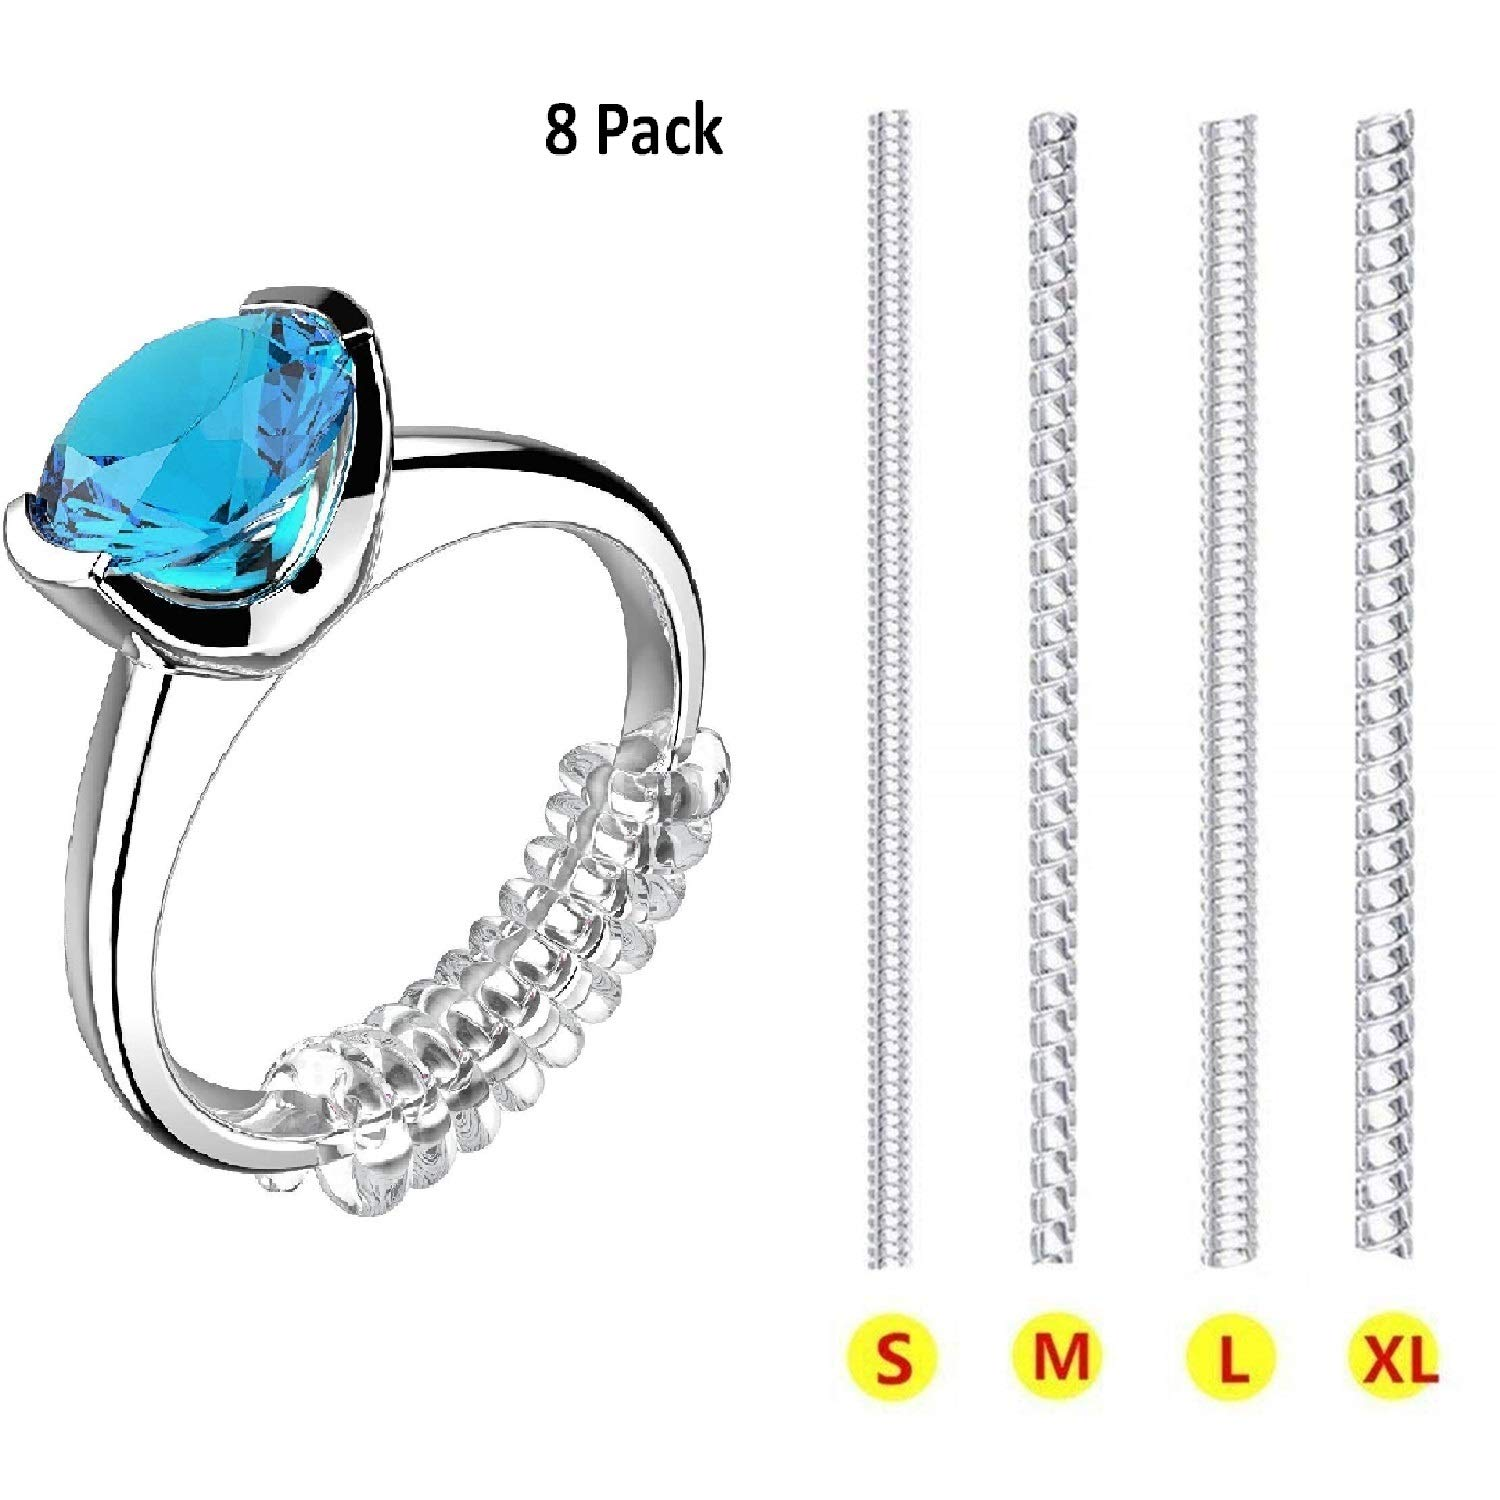 Ring Size Adjuster for Loose Rings Invisible Transparent Silicone Guard Clip Noodle Jewelry Tightener Resizer 4 Sizes Fit Almost Any Ring 8 Pack FX JZS8PCSUSA